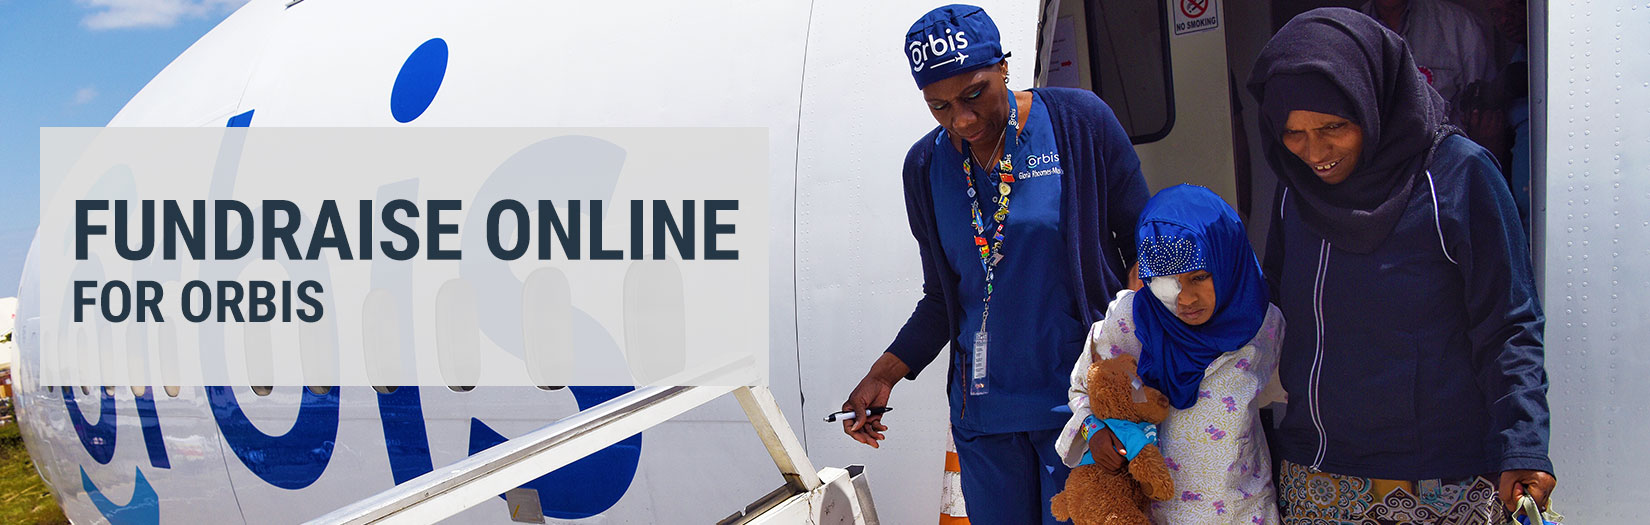 Fundraise Online - Orbis Volunteer and Patient